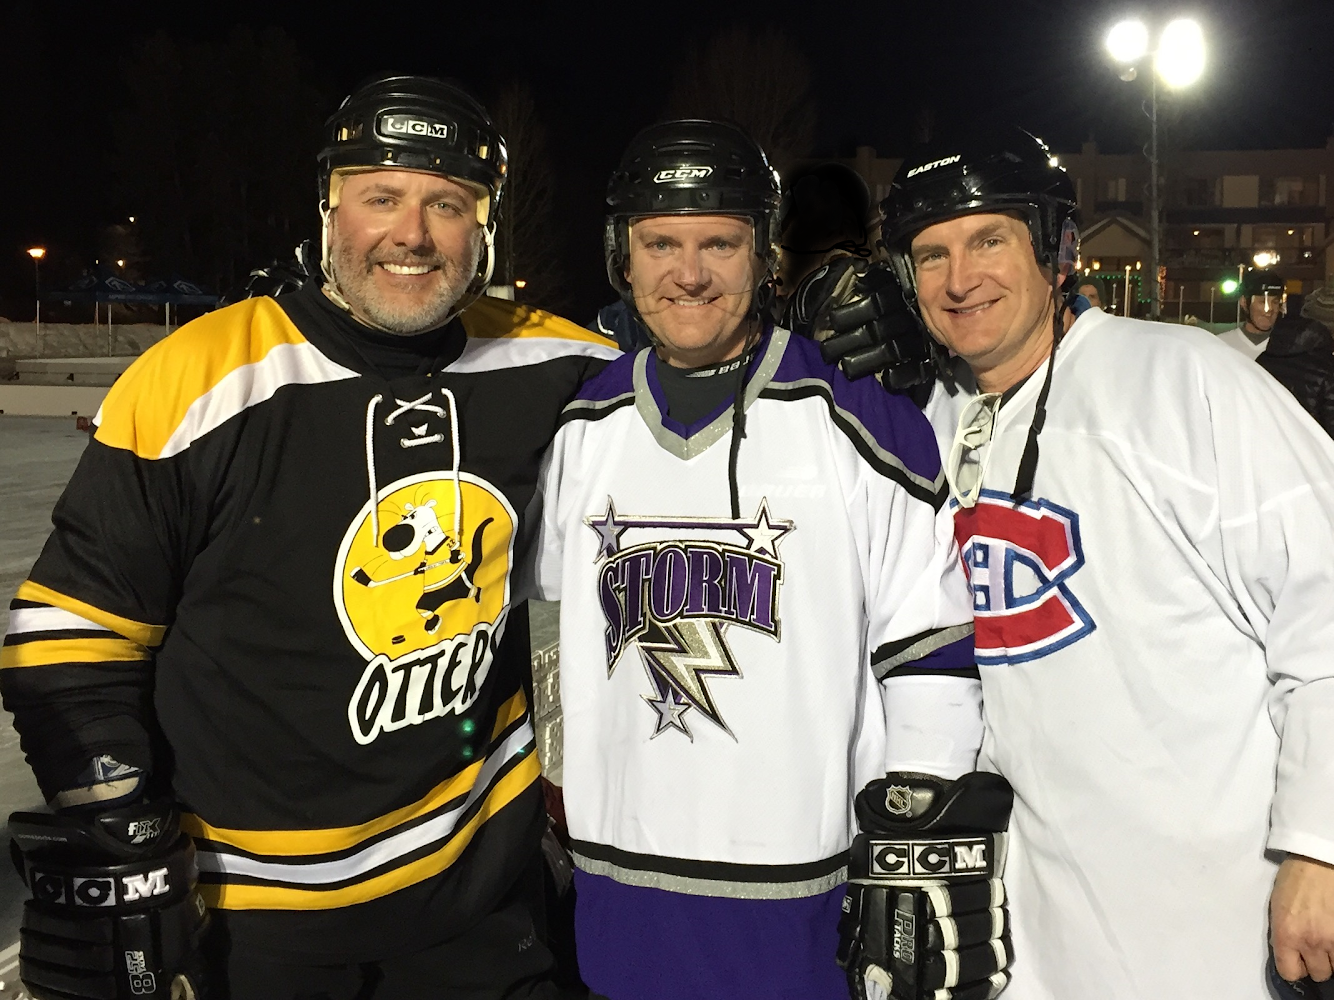 9280 Pond Hockey Tournament Charity